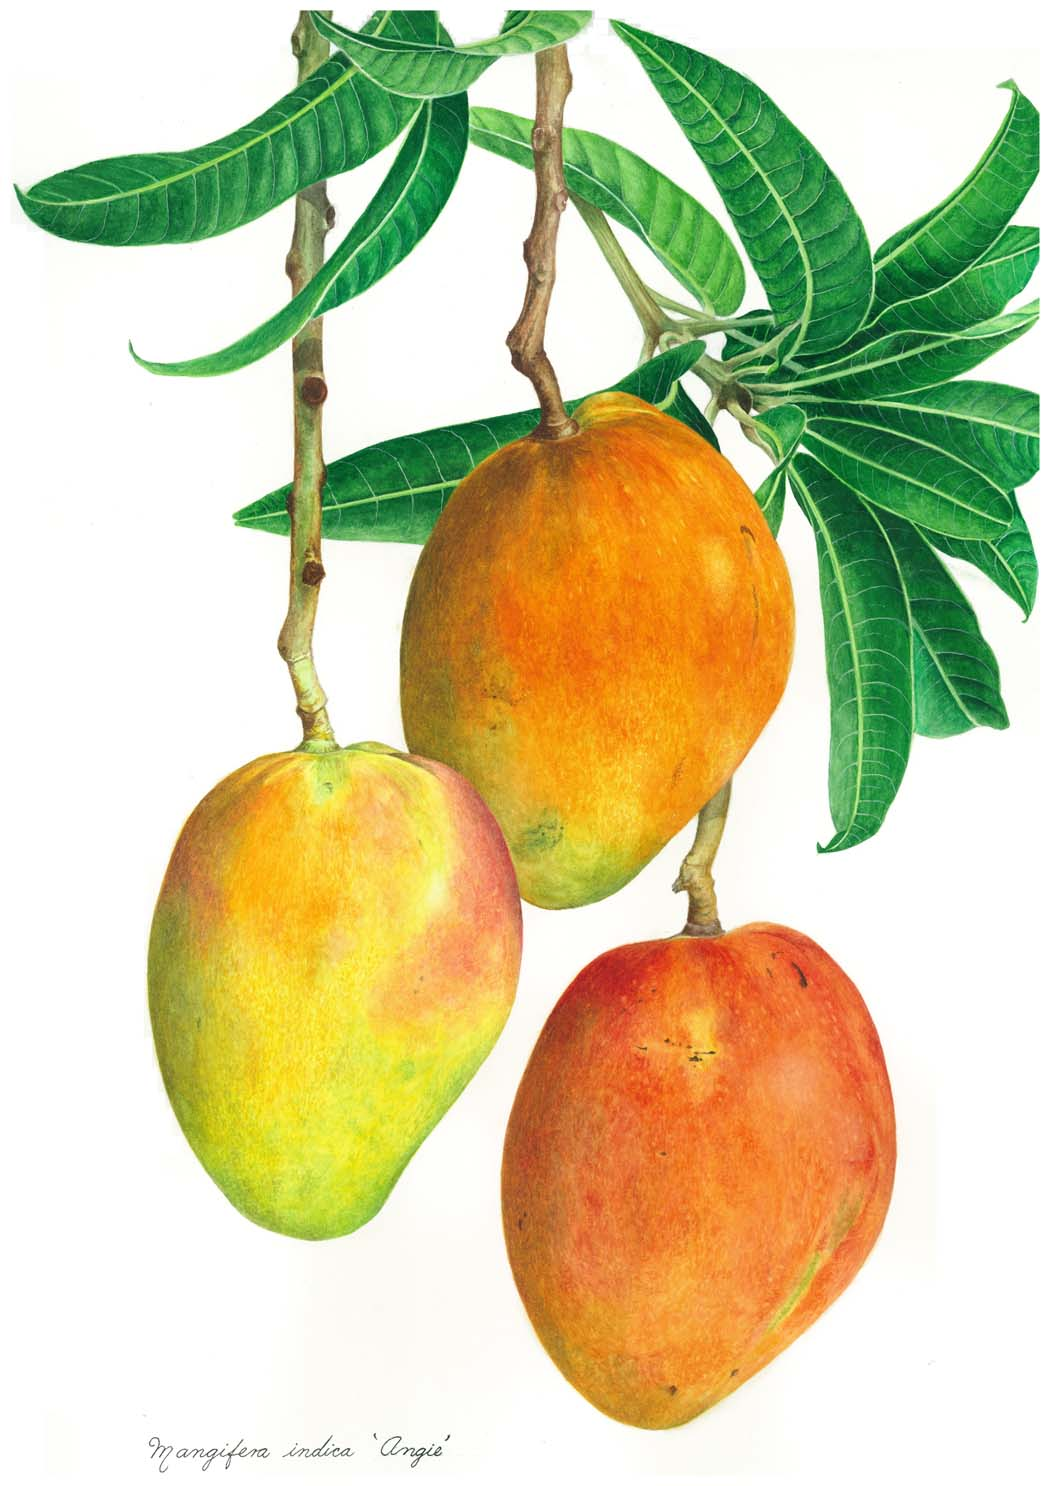 Mango clipart basket mango Pinterest Tropical Fairchild Garden Fairchild